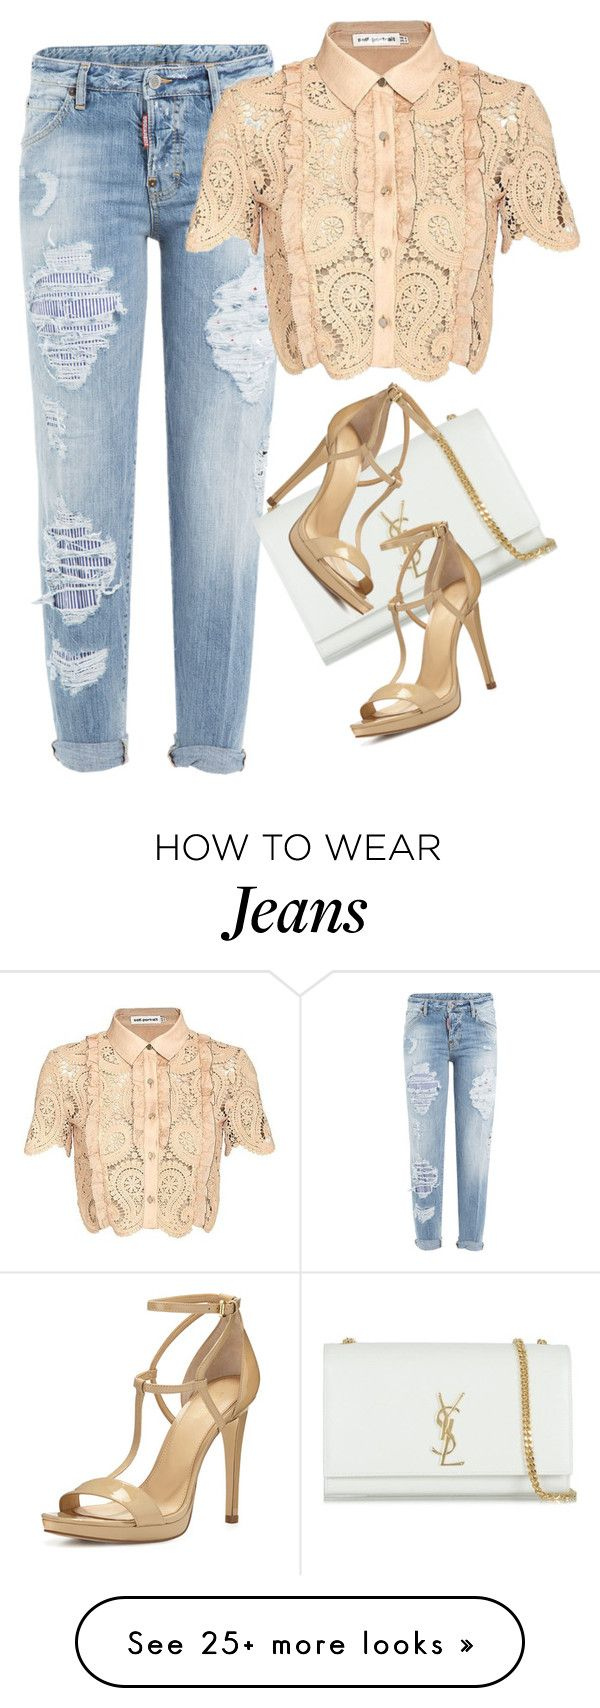 """""""Untitled #2701"""" by misnik on Polyvore featuring Dsquared2, Yves Saint Laurent, self-portrait and MICHAEL Michael Kors"""